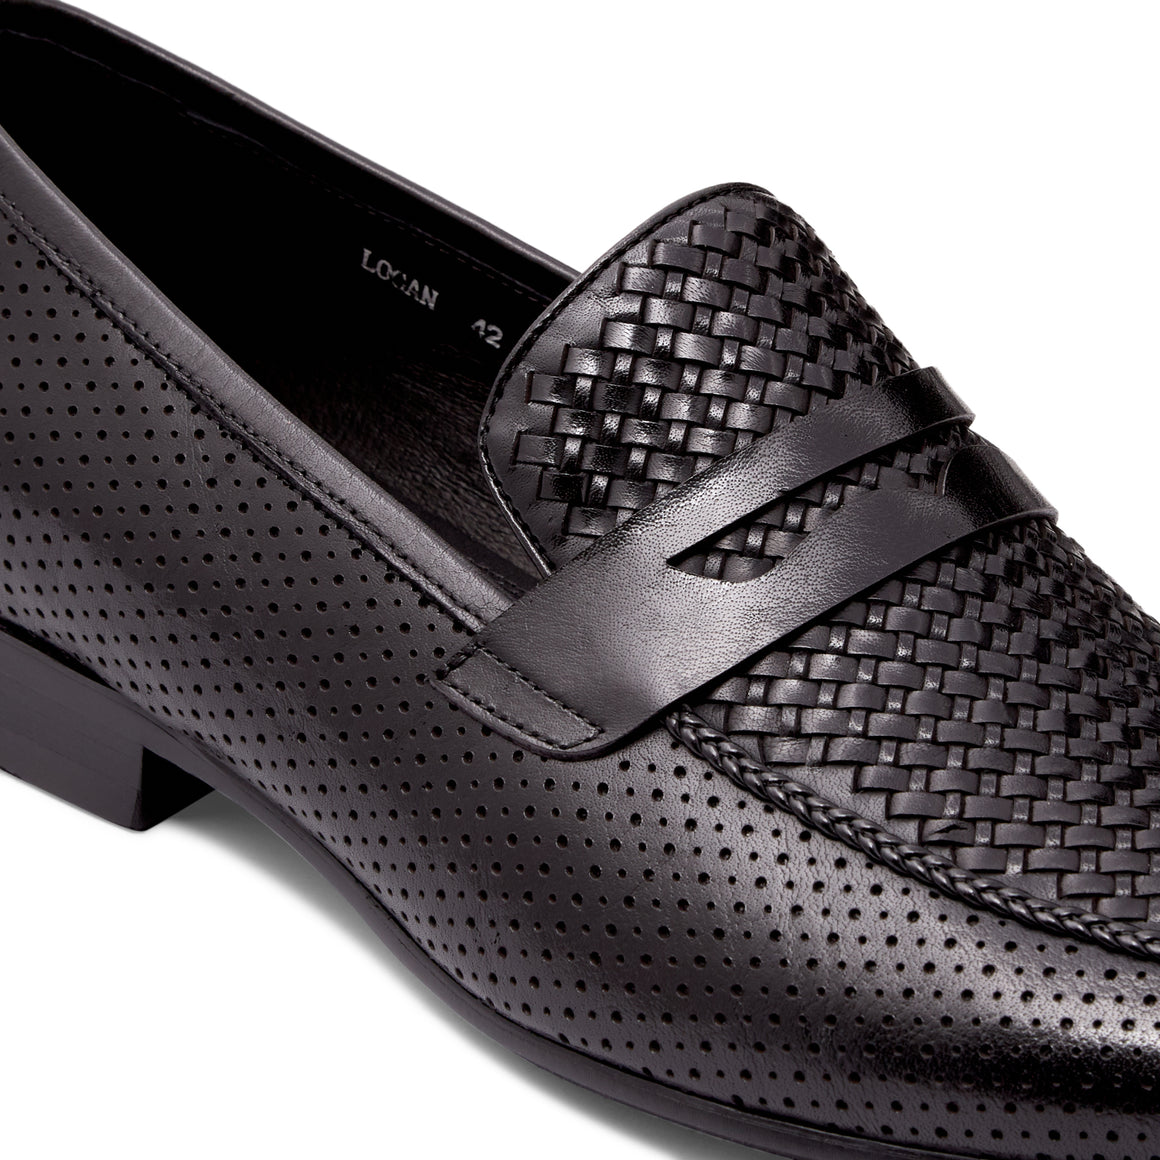 Logan Black Loafers